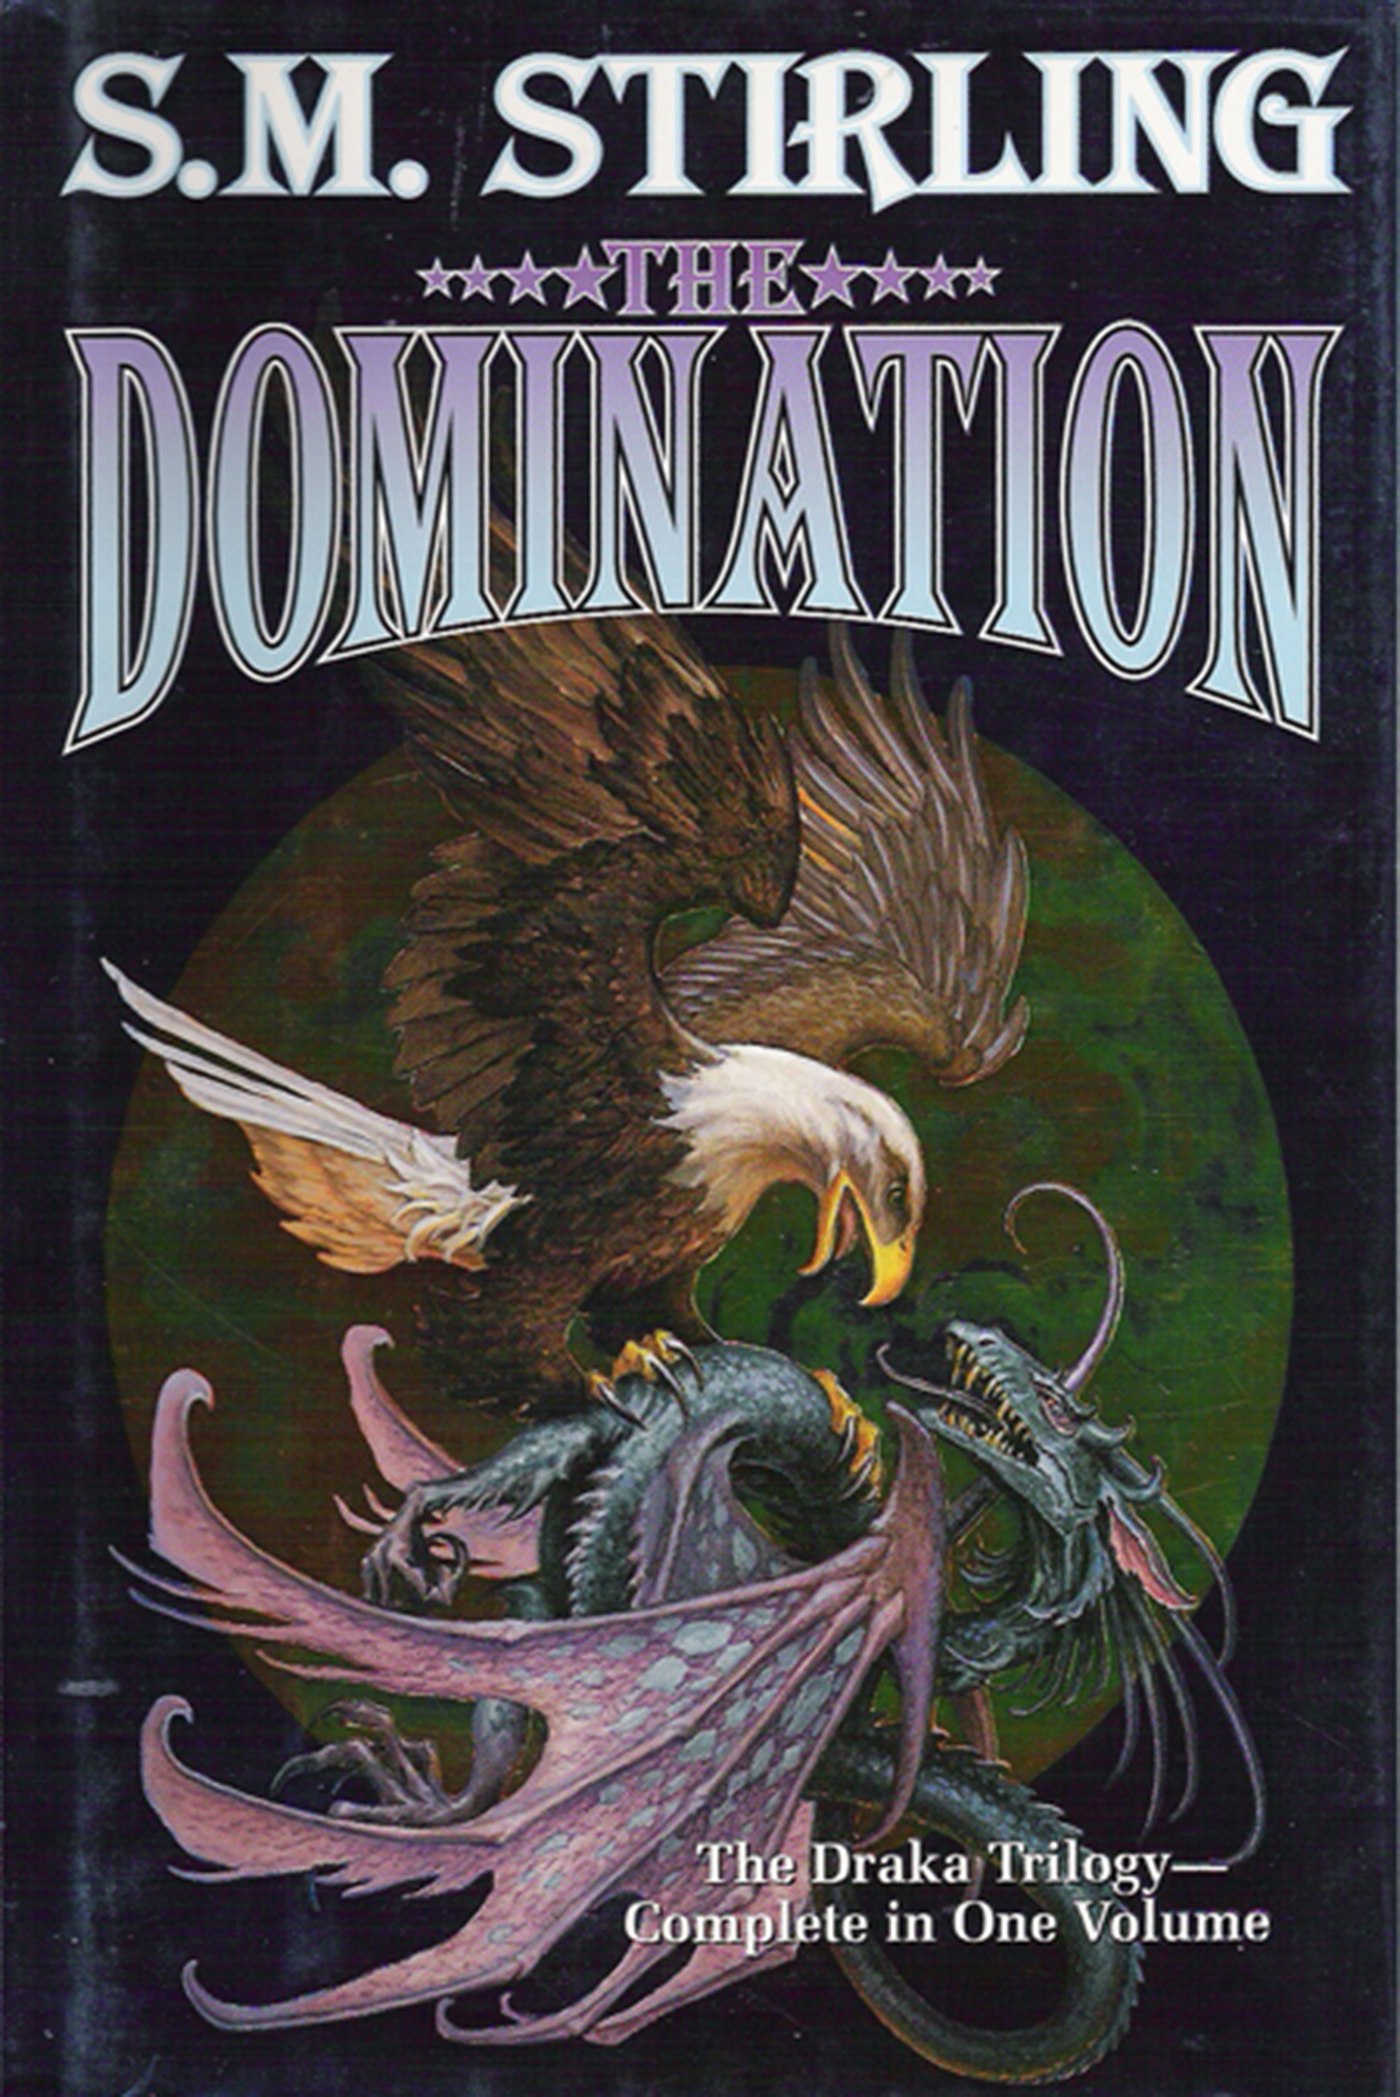 S. M. Stirling - The Domination